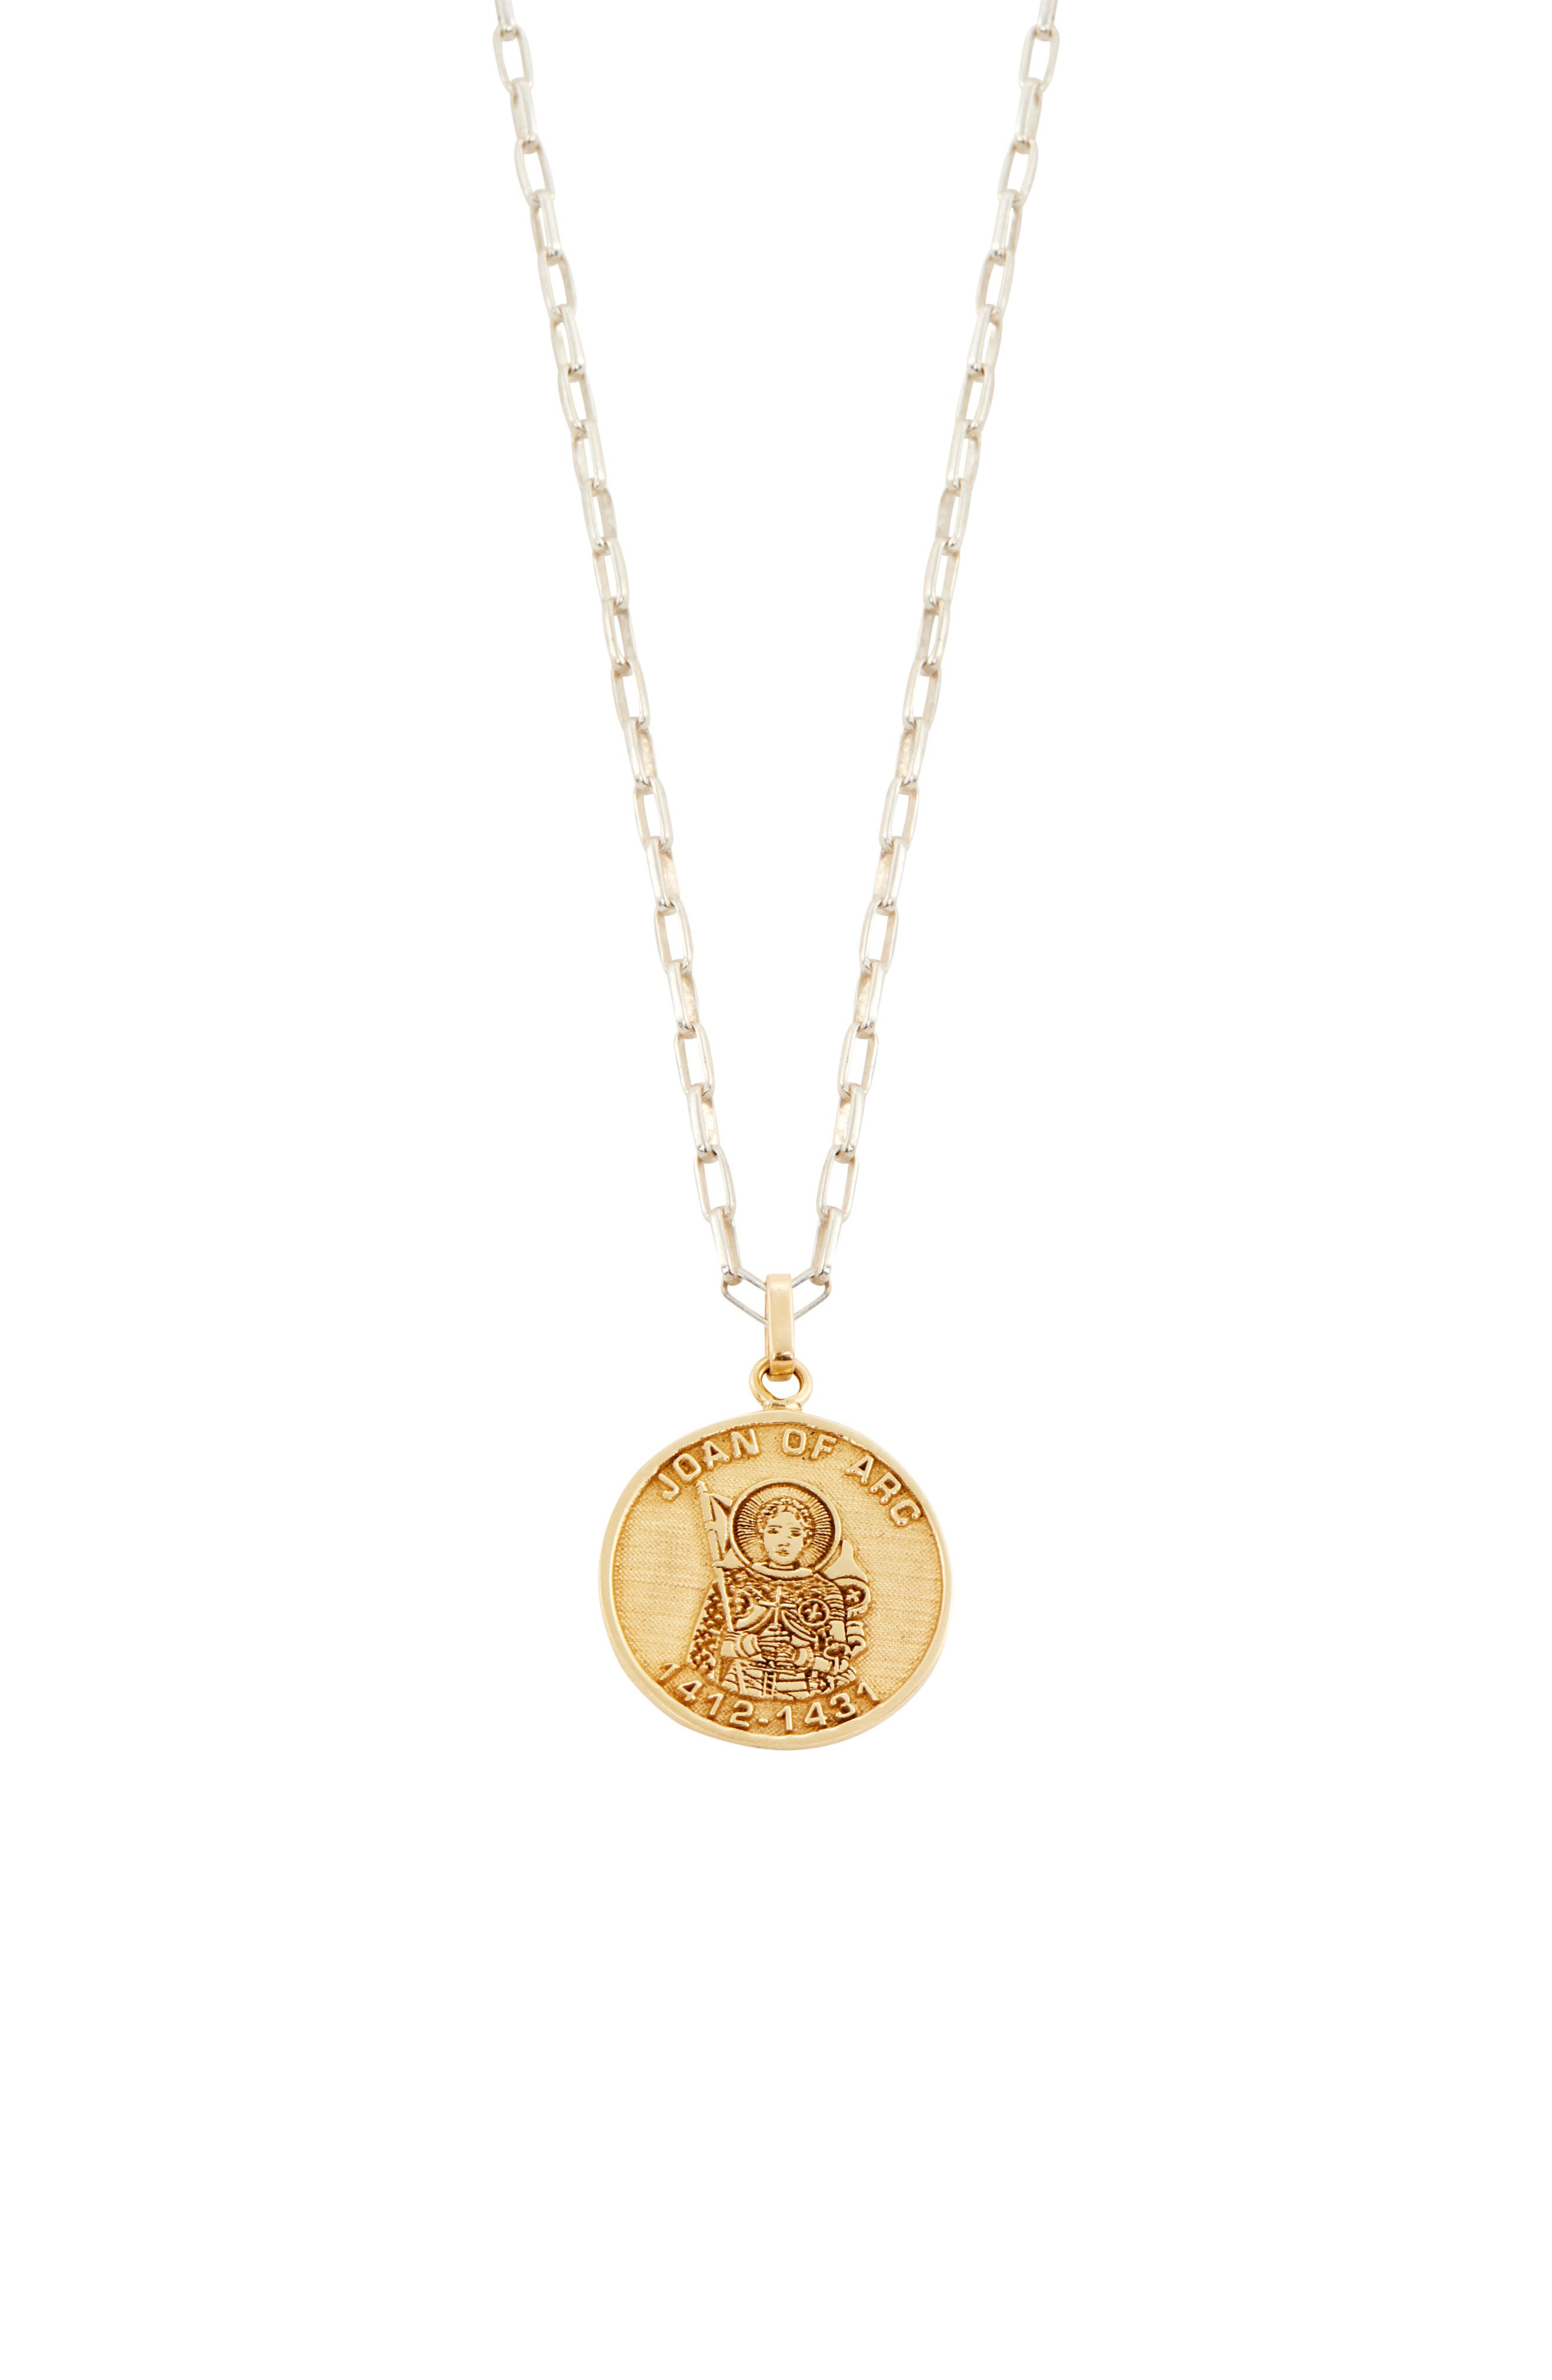 Joan Of Arc Pendant Necklace in Gold/ Silver